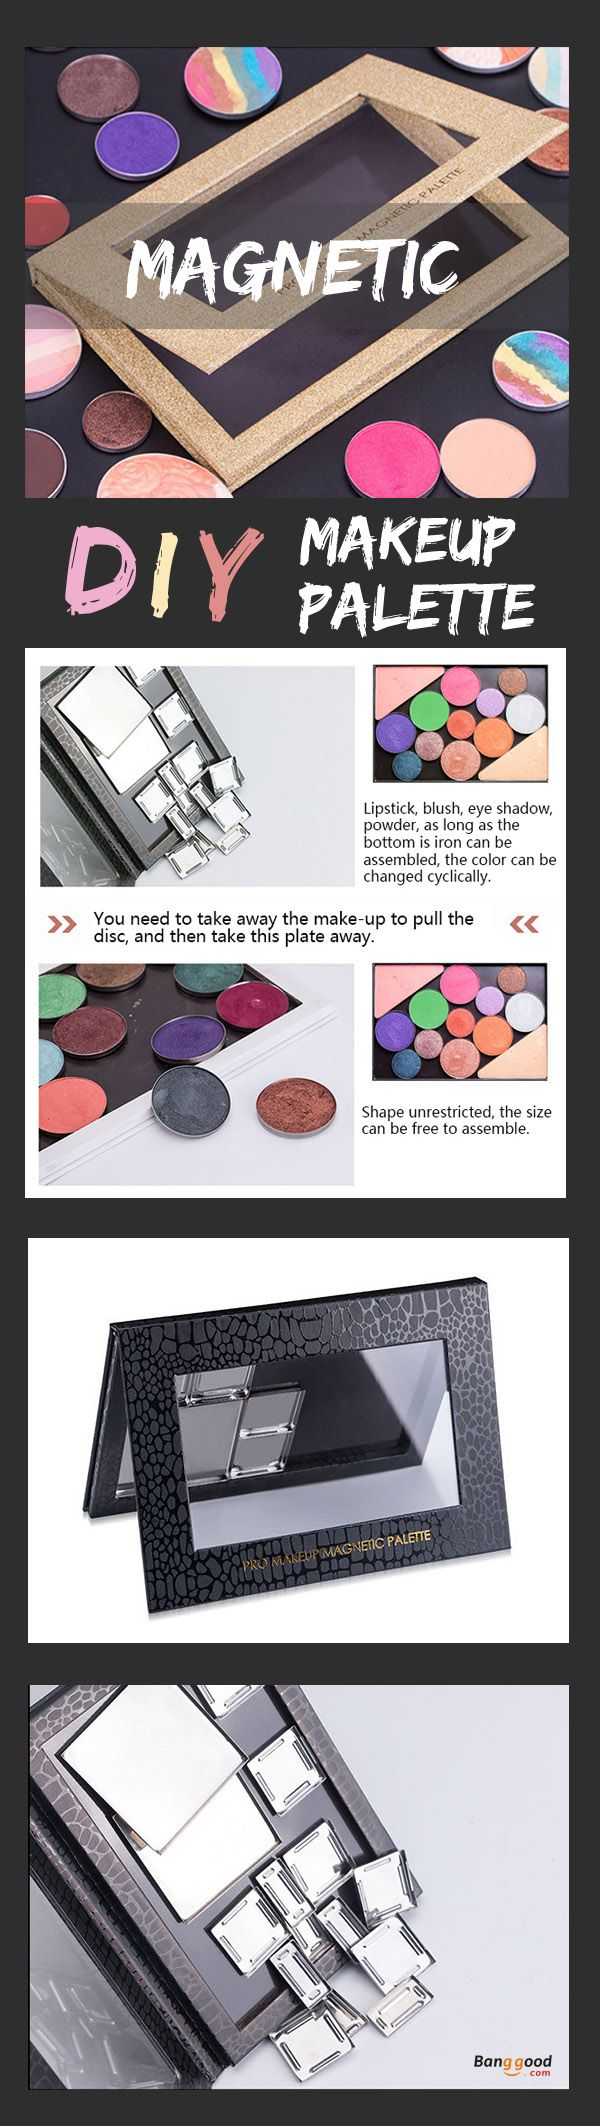 US$17.99+Free shipping. DIY Makeup Palette, Empty Eyeshadow Palette,  Magnetic, Easy to carry.  Eyeshadow, Lip Gross, Powder, Convenient for you. Shop now!